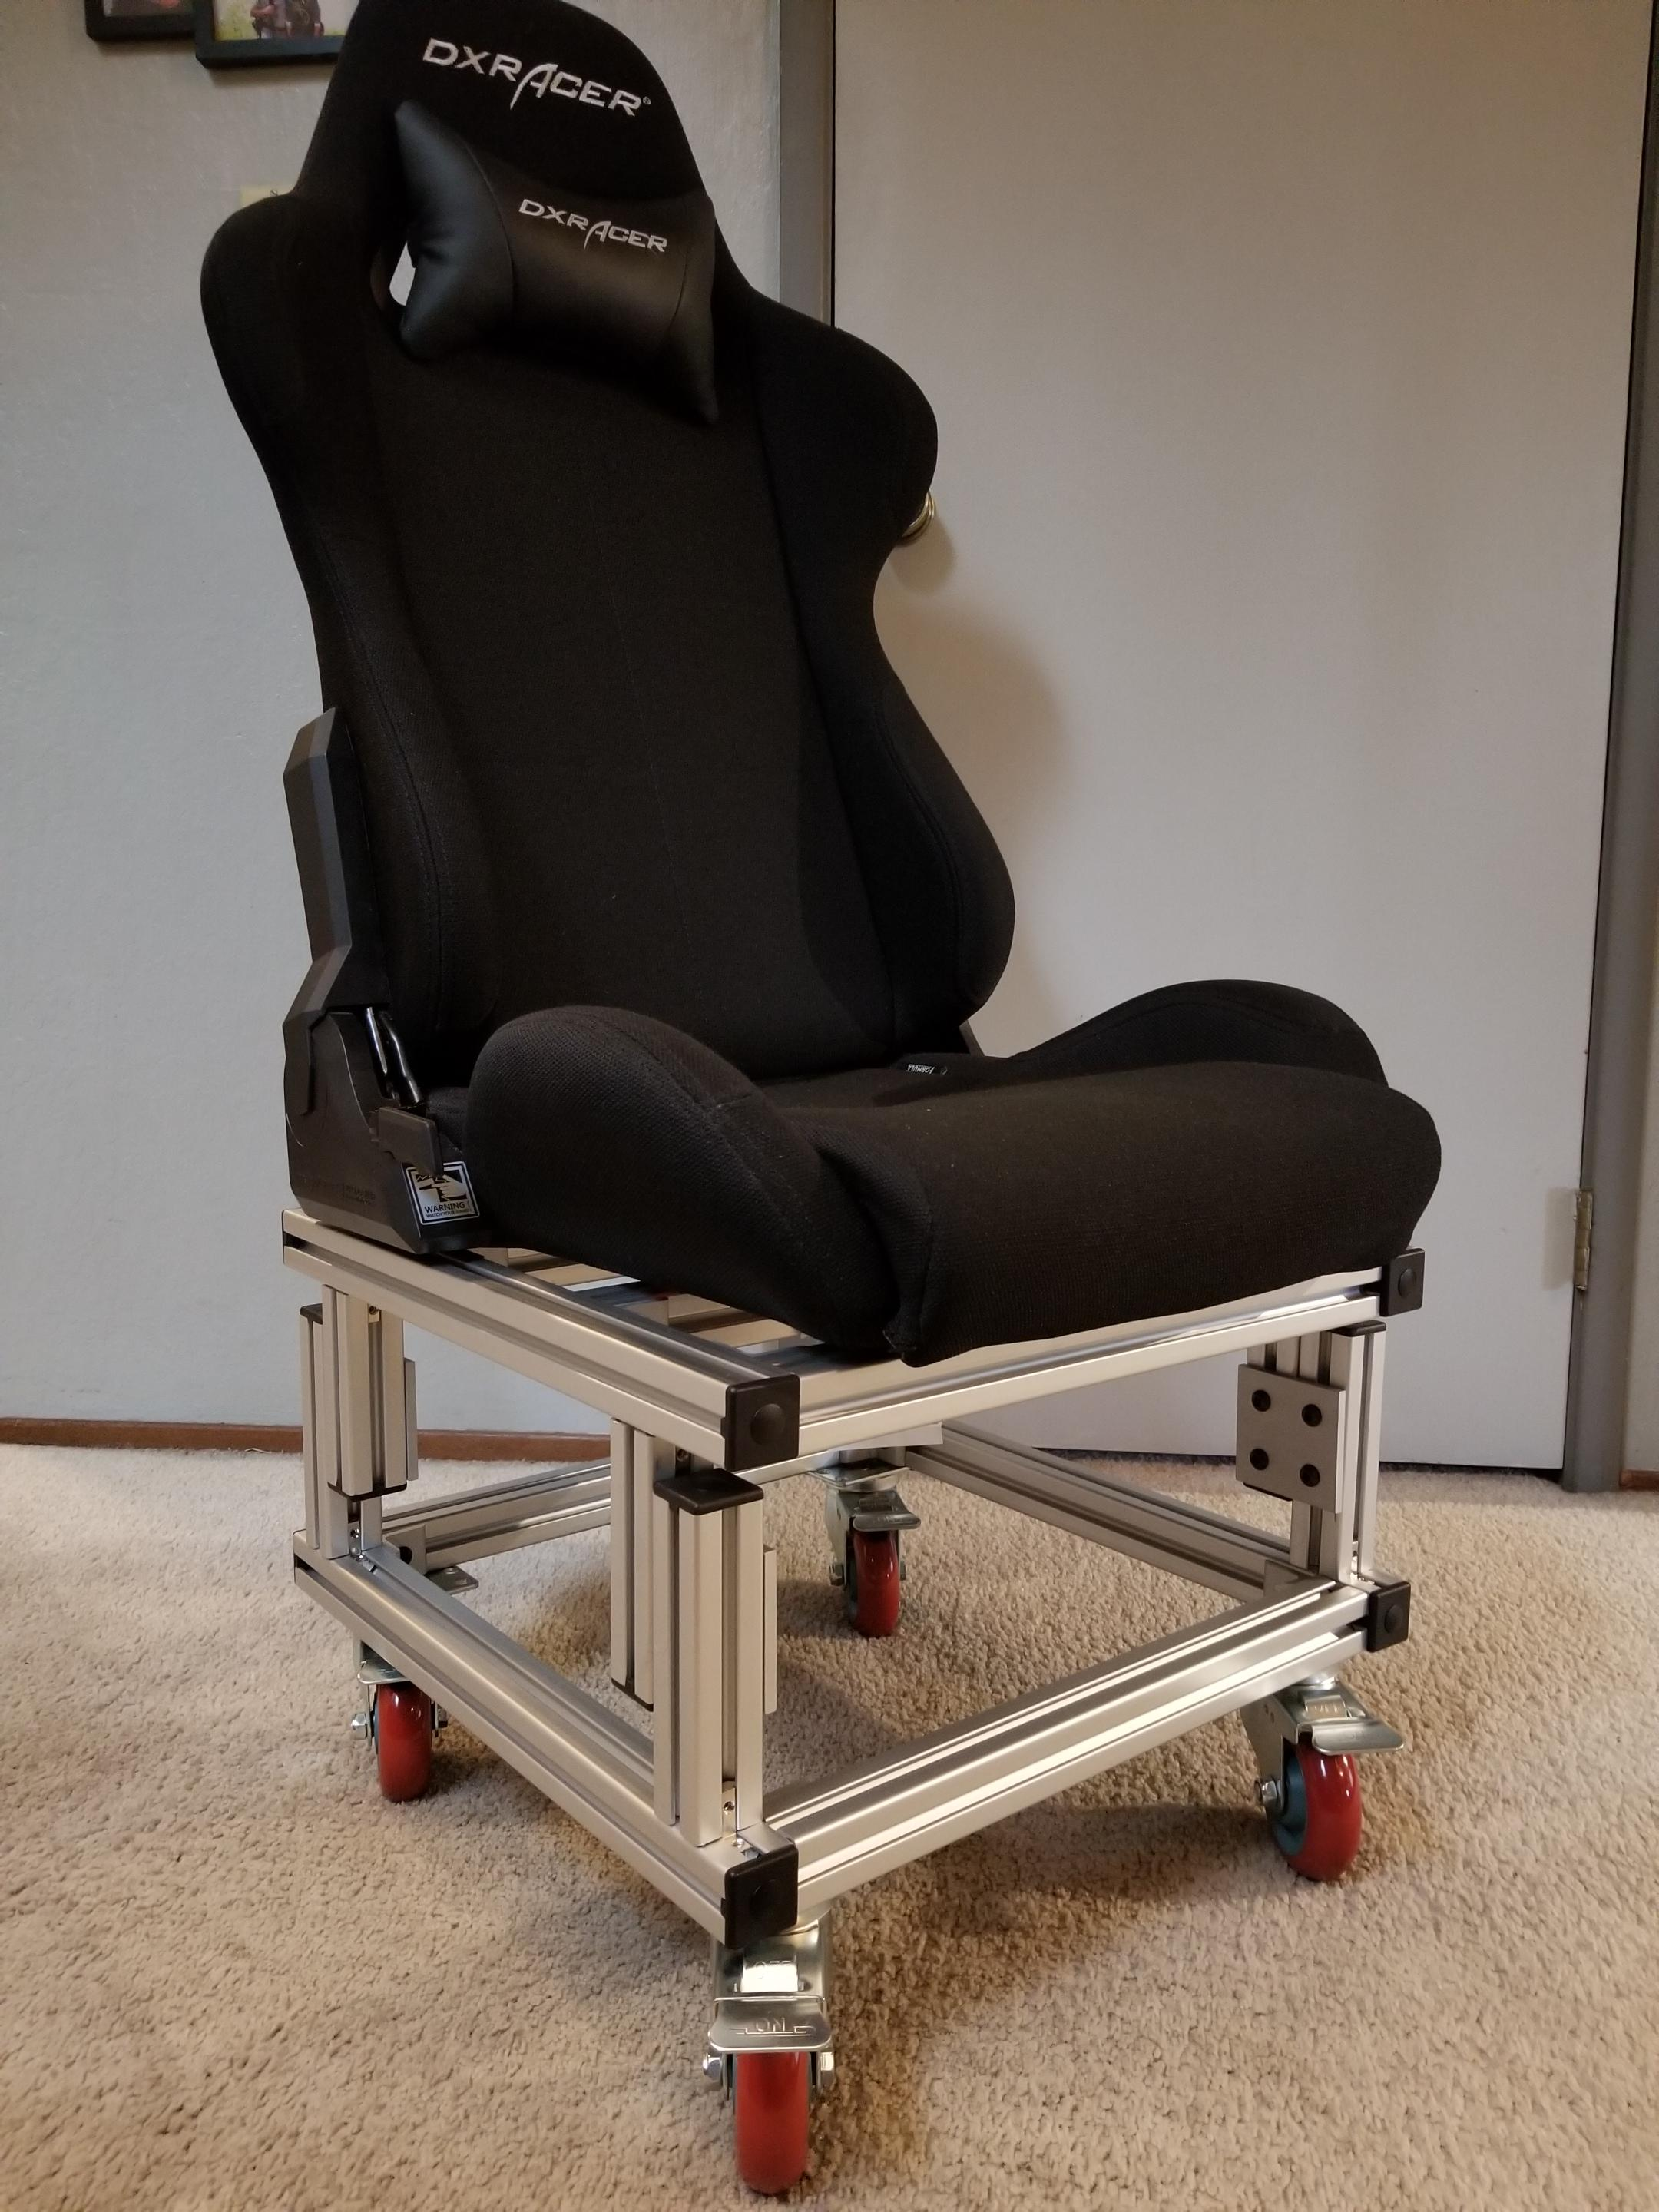 Will Chair An 8020 Solution For A Chair That Rocks And Swivels Will